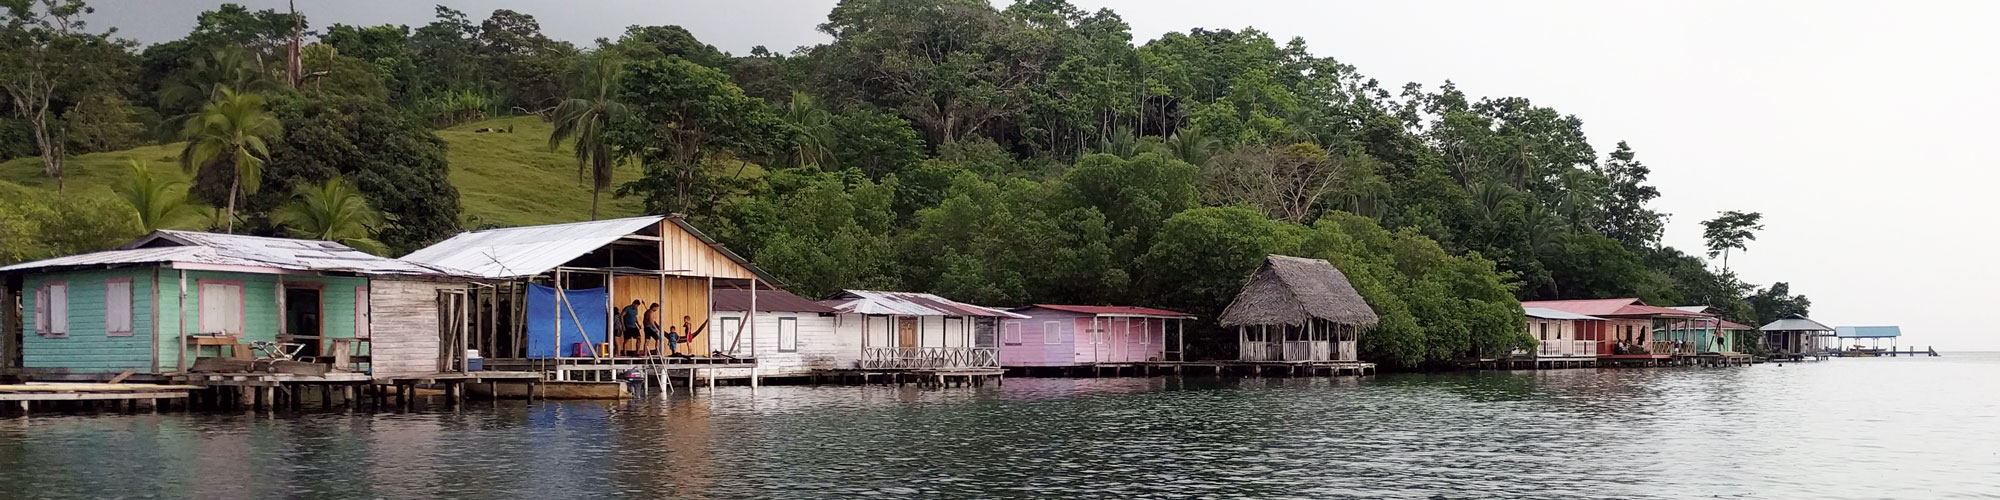 Fishing families' cottages in Bocas del Toro, Panama.